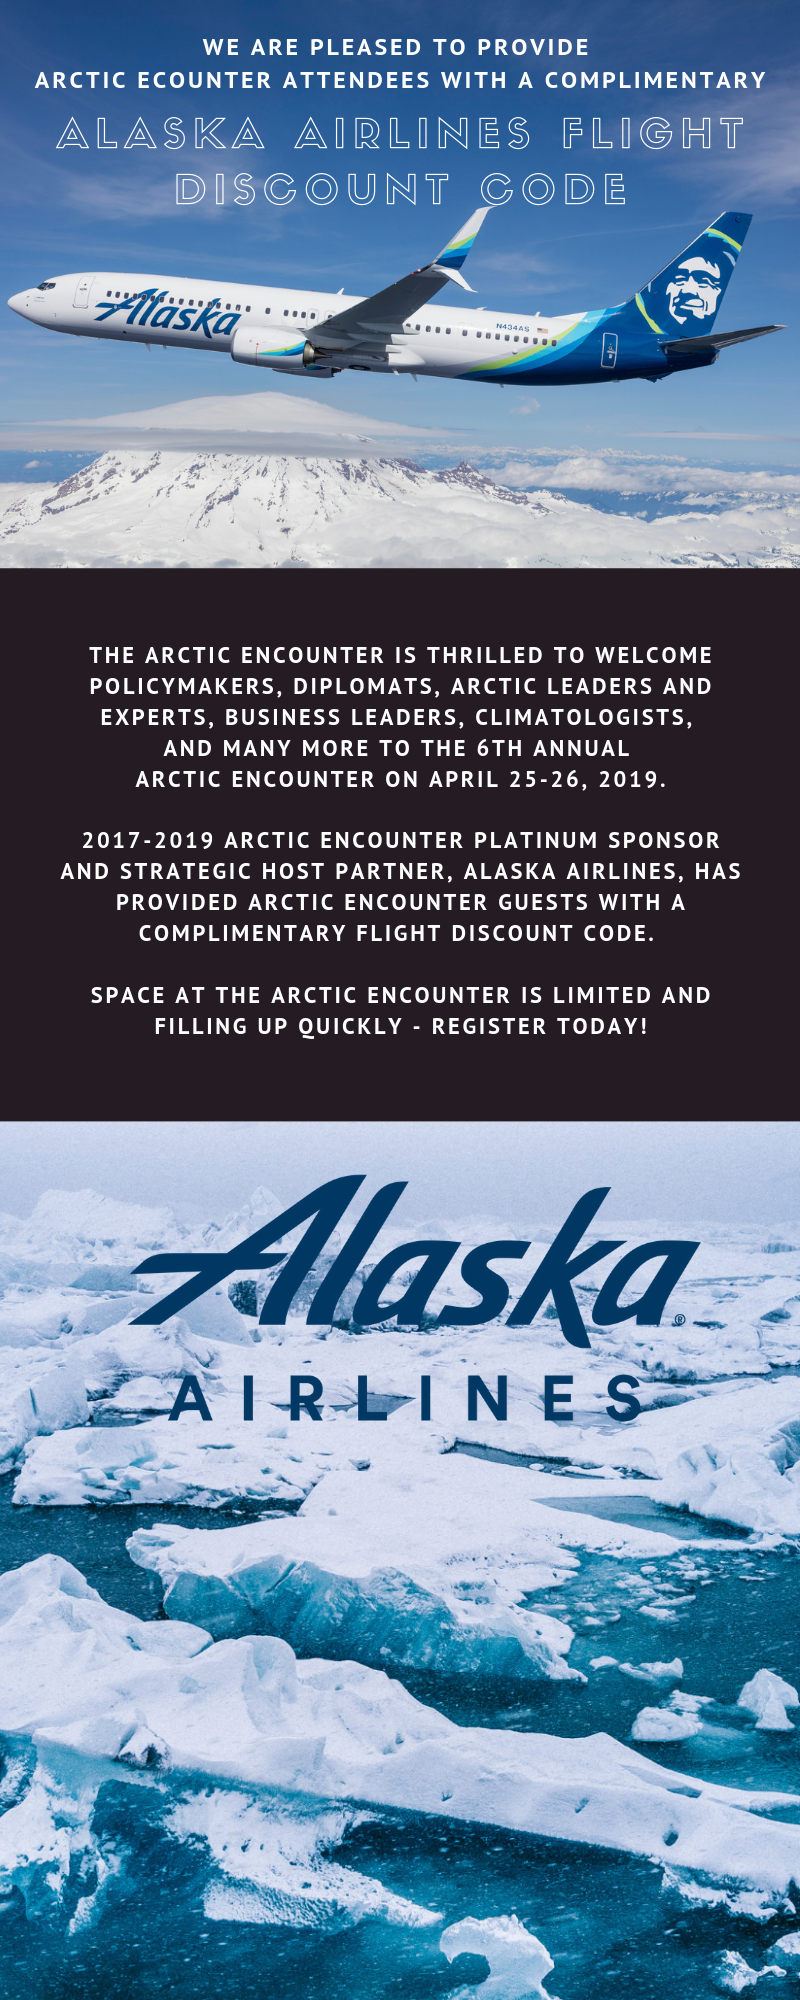 alaska air website copy.png